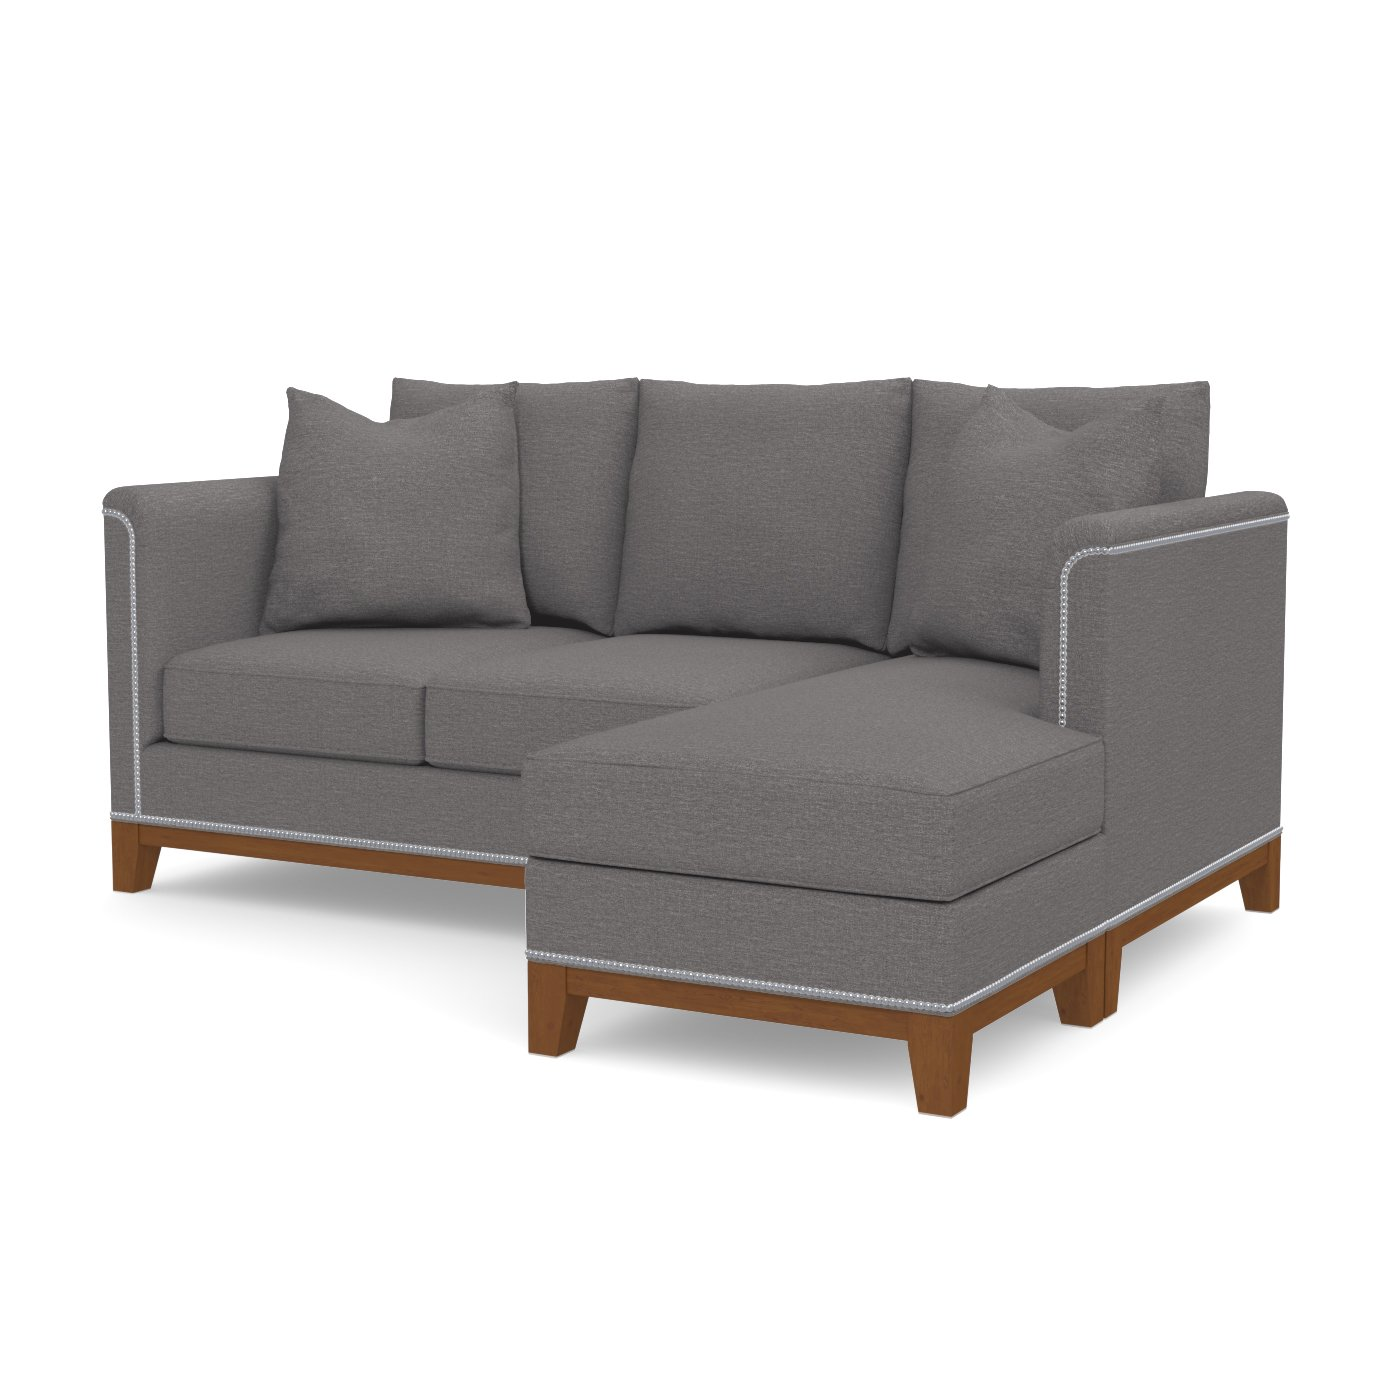 La Brea Reversible Chaise Sofa Choice of Fabrics Apt2B